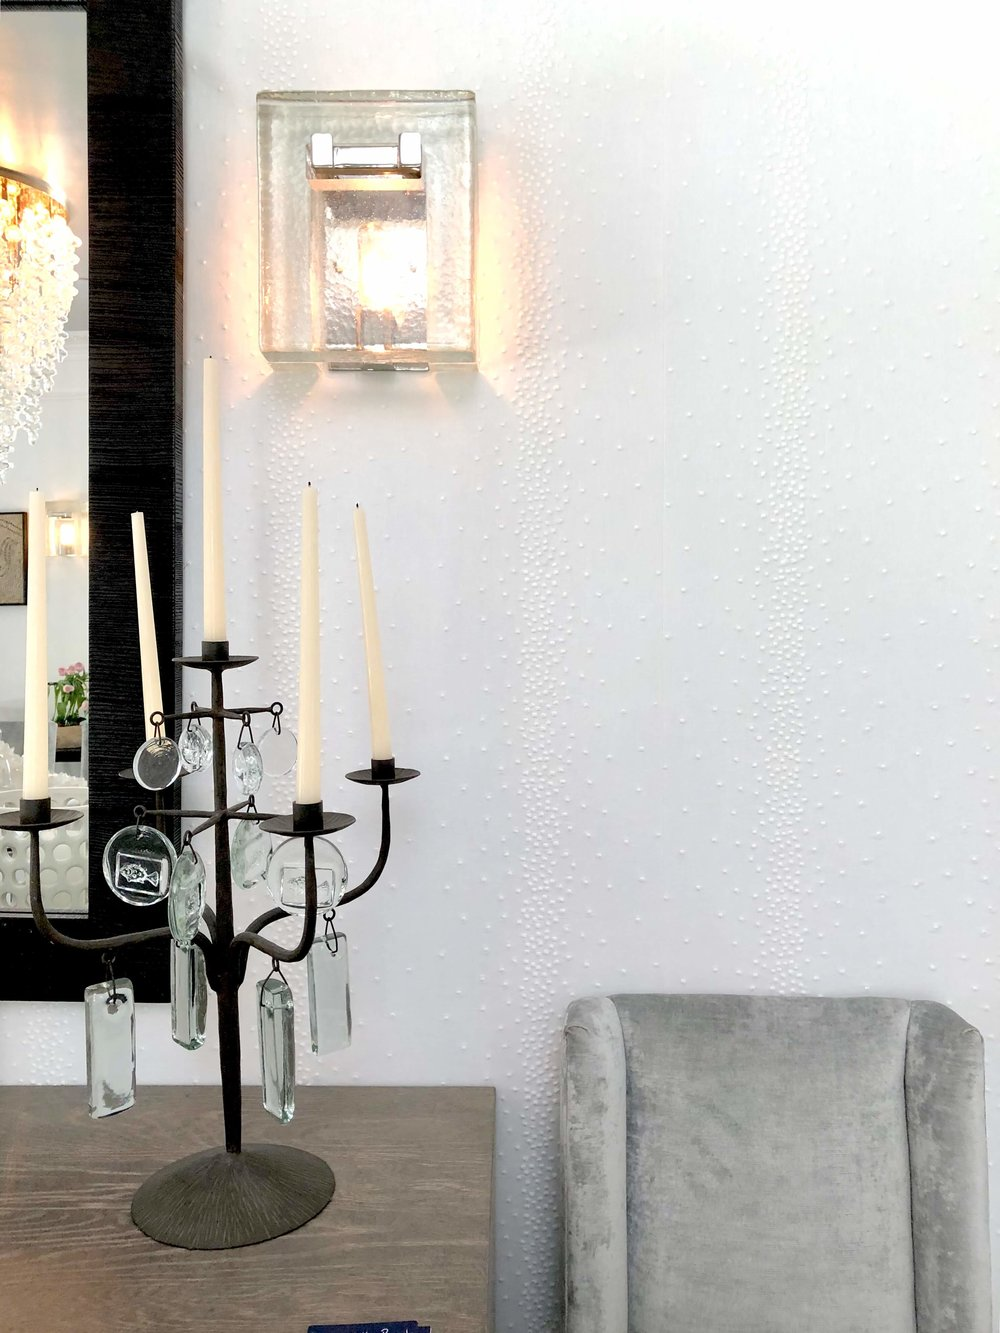 Dining room was designed by Elizabeth Lamont, from Room by the Beach, at the Pasadena Showcase House of Design 2018 #diningroom #diningroomideas #upholsteredwalls #candelabra #wallsconce